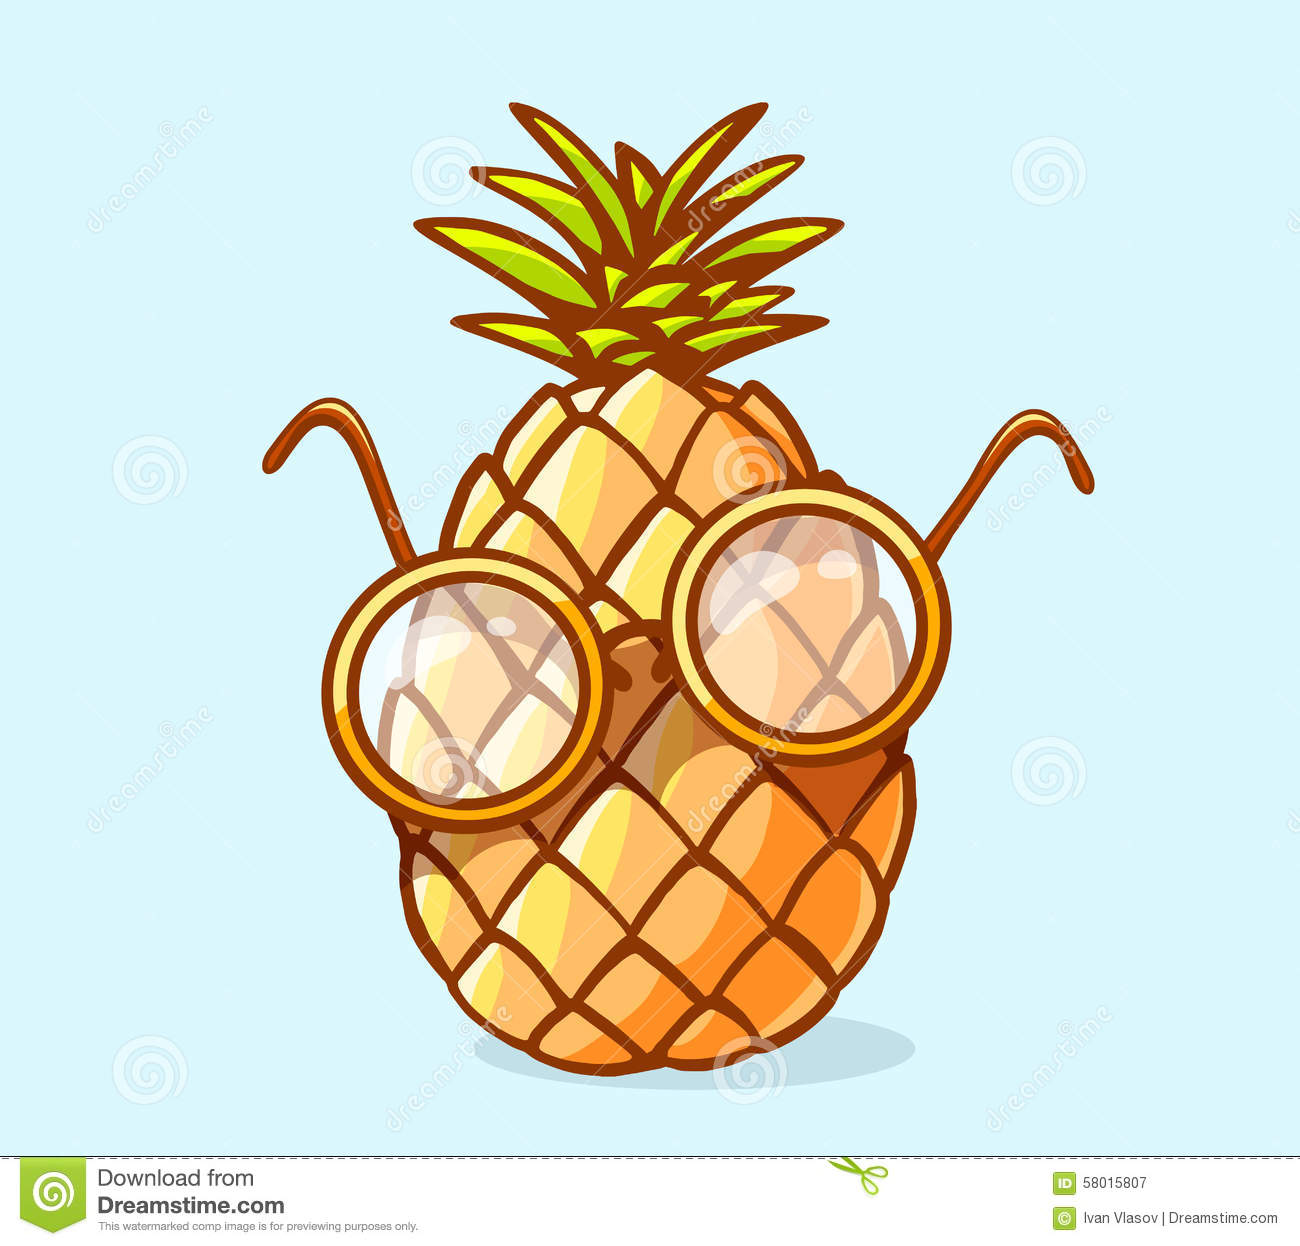 vector illustration of colorful nerd pineapple with pineapple clipart images pineapple clipart cricut